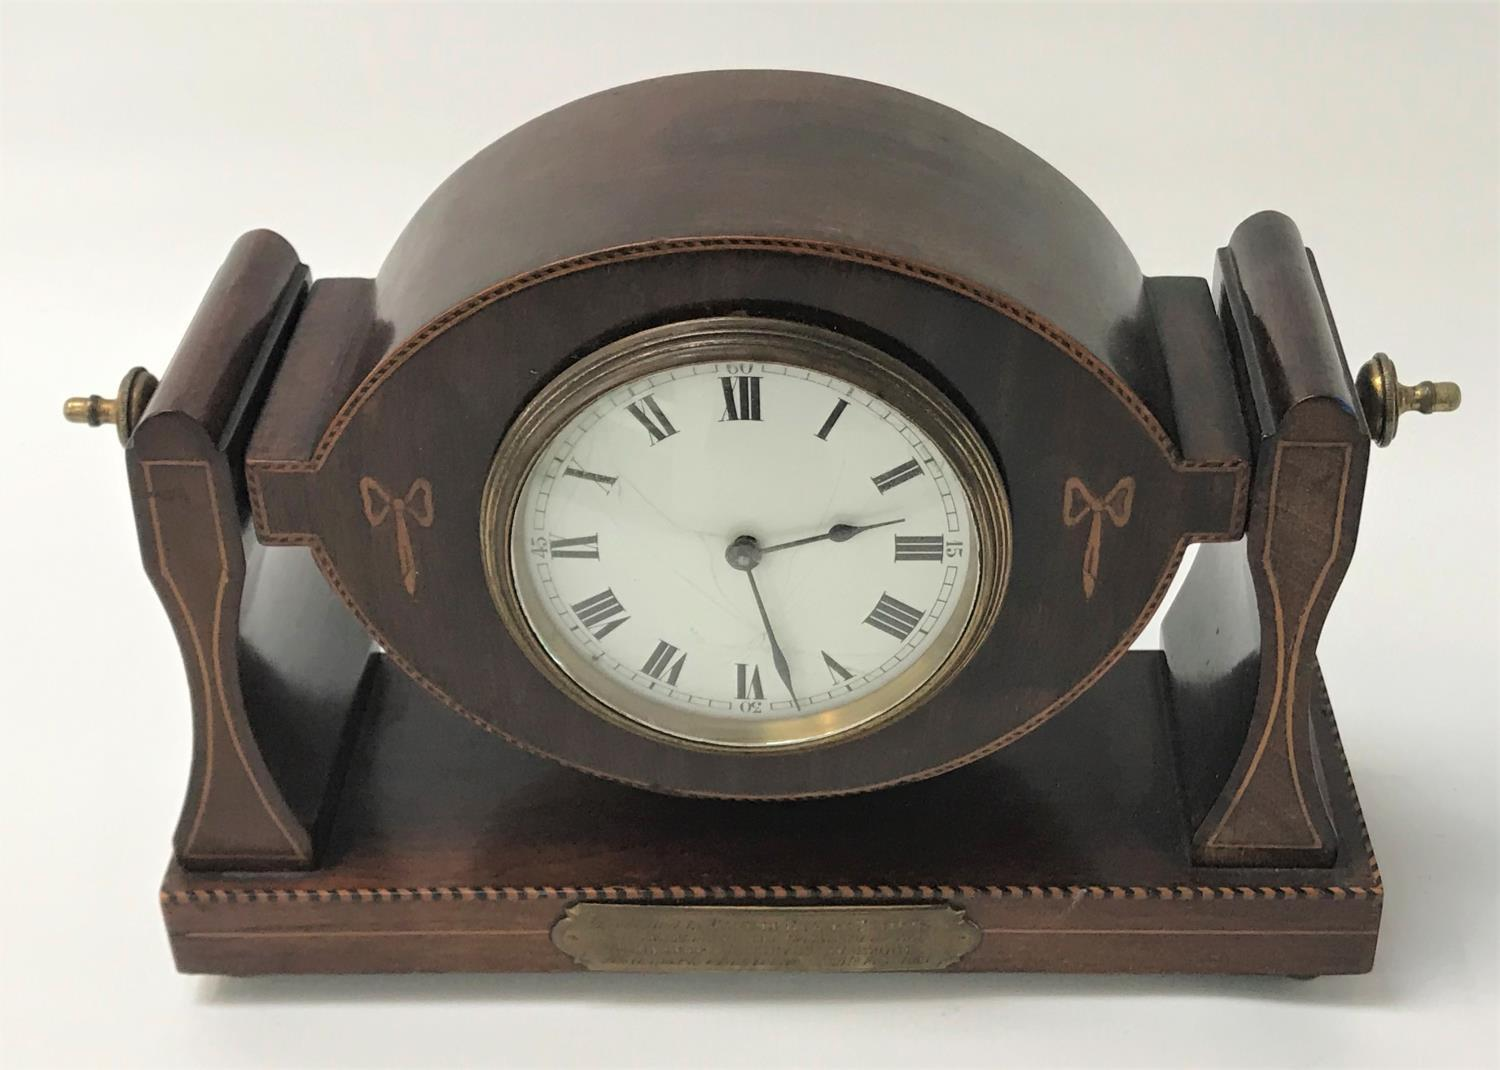 Lot 268 - MAHOGANY CASED SWISS MADE BUREN MANTEL CLOCK the white enamel dial with Roman numerals, the